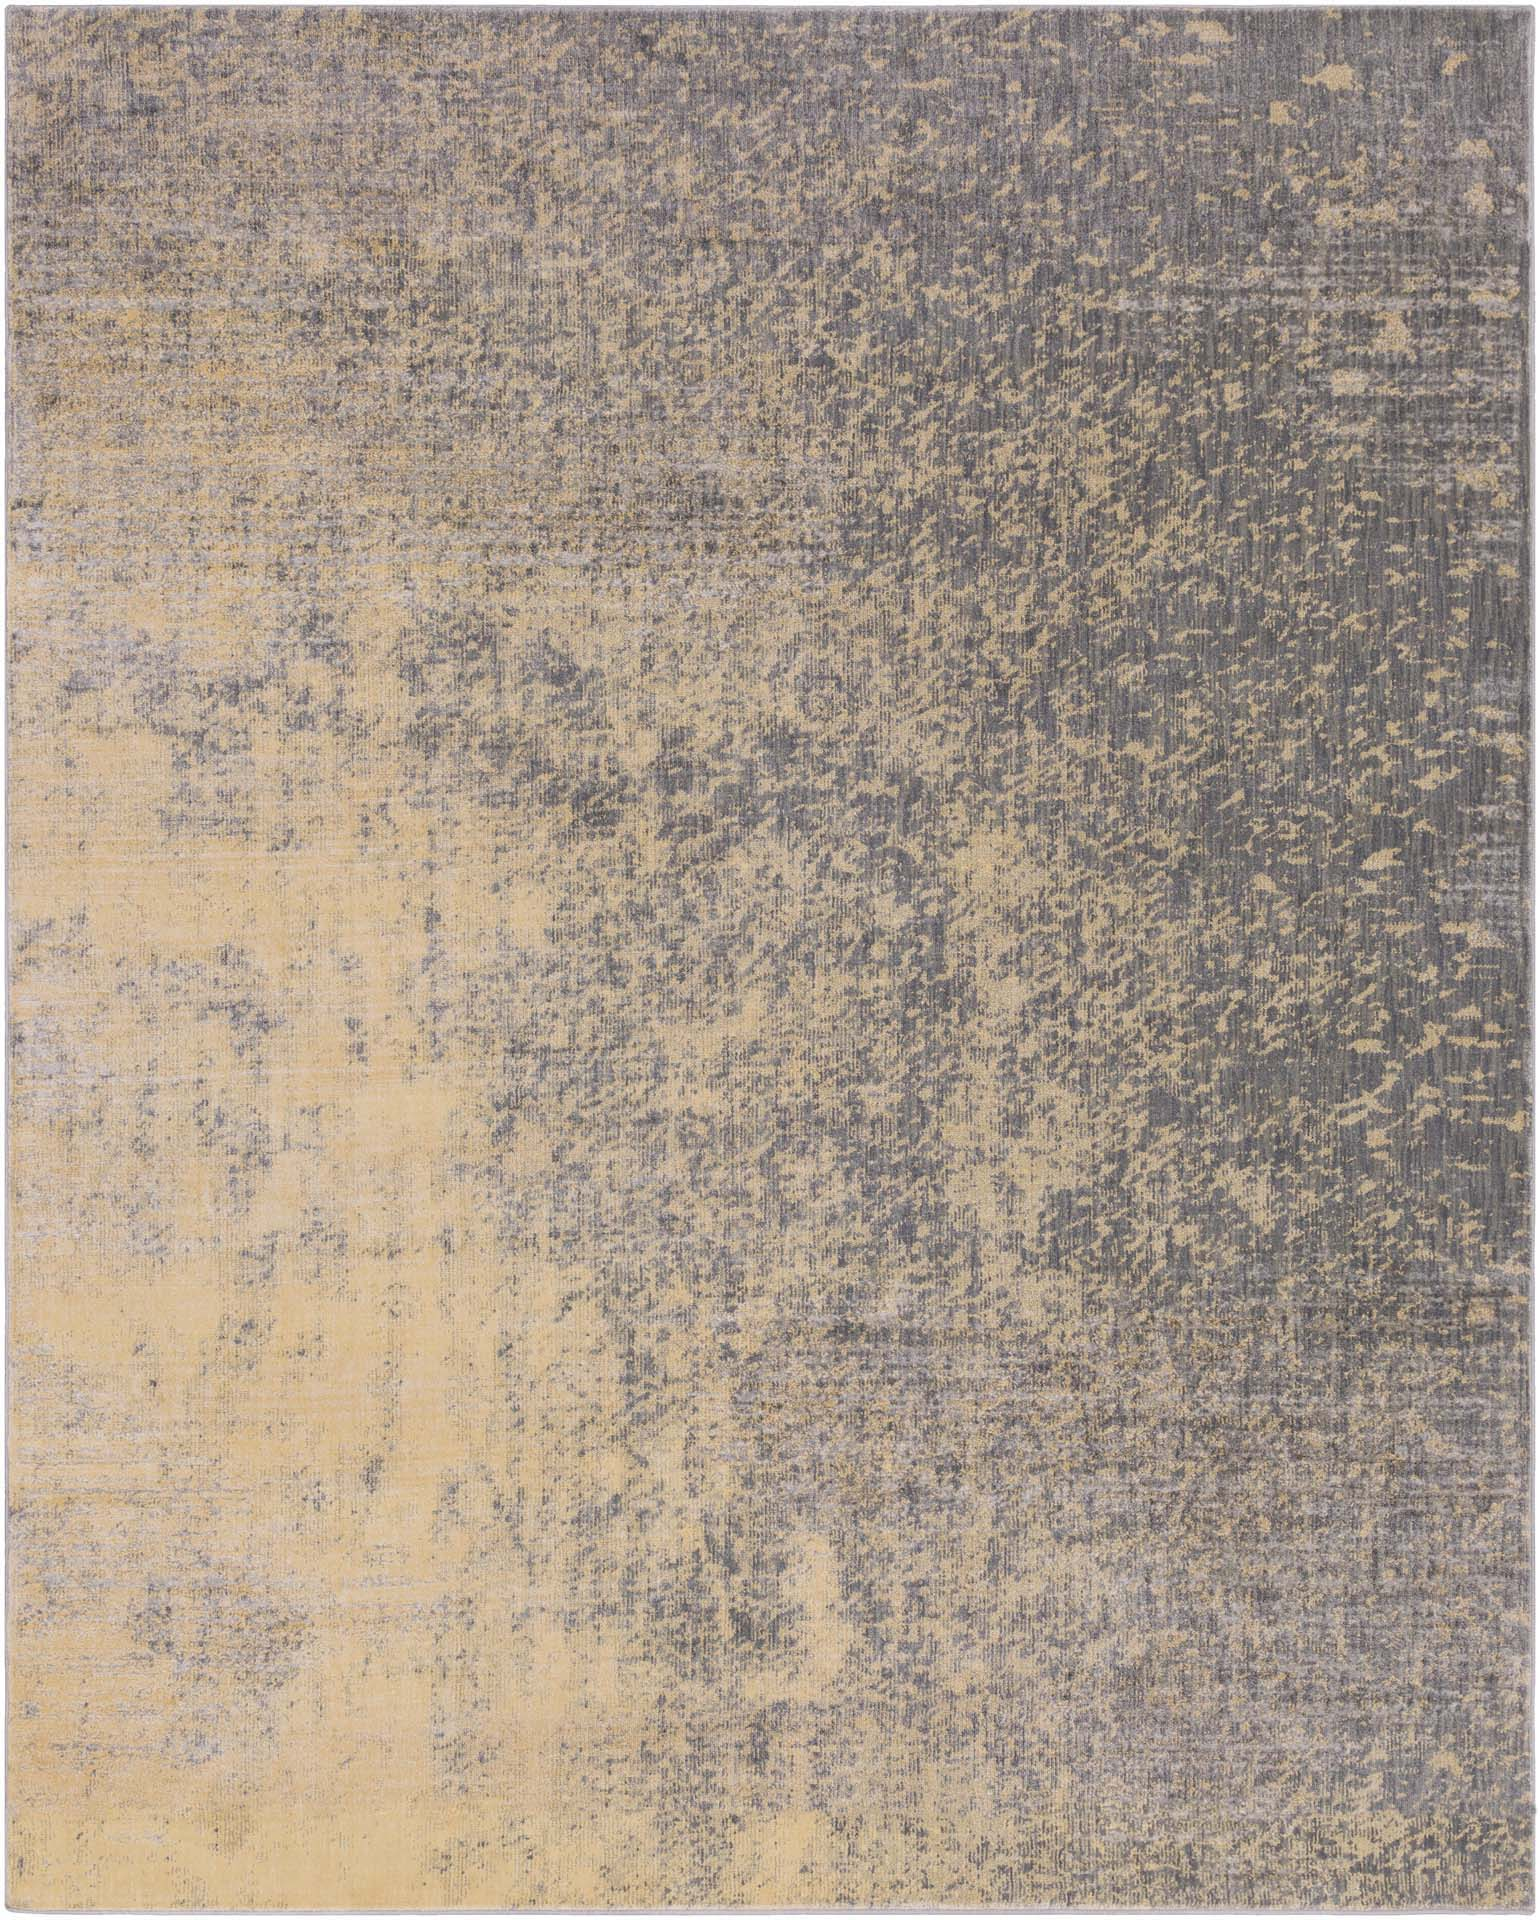 Surya Serene Sre 1011 Area Rug The Dump Luxe Furniture